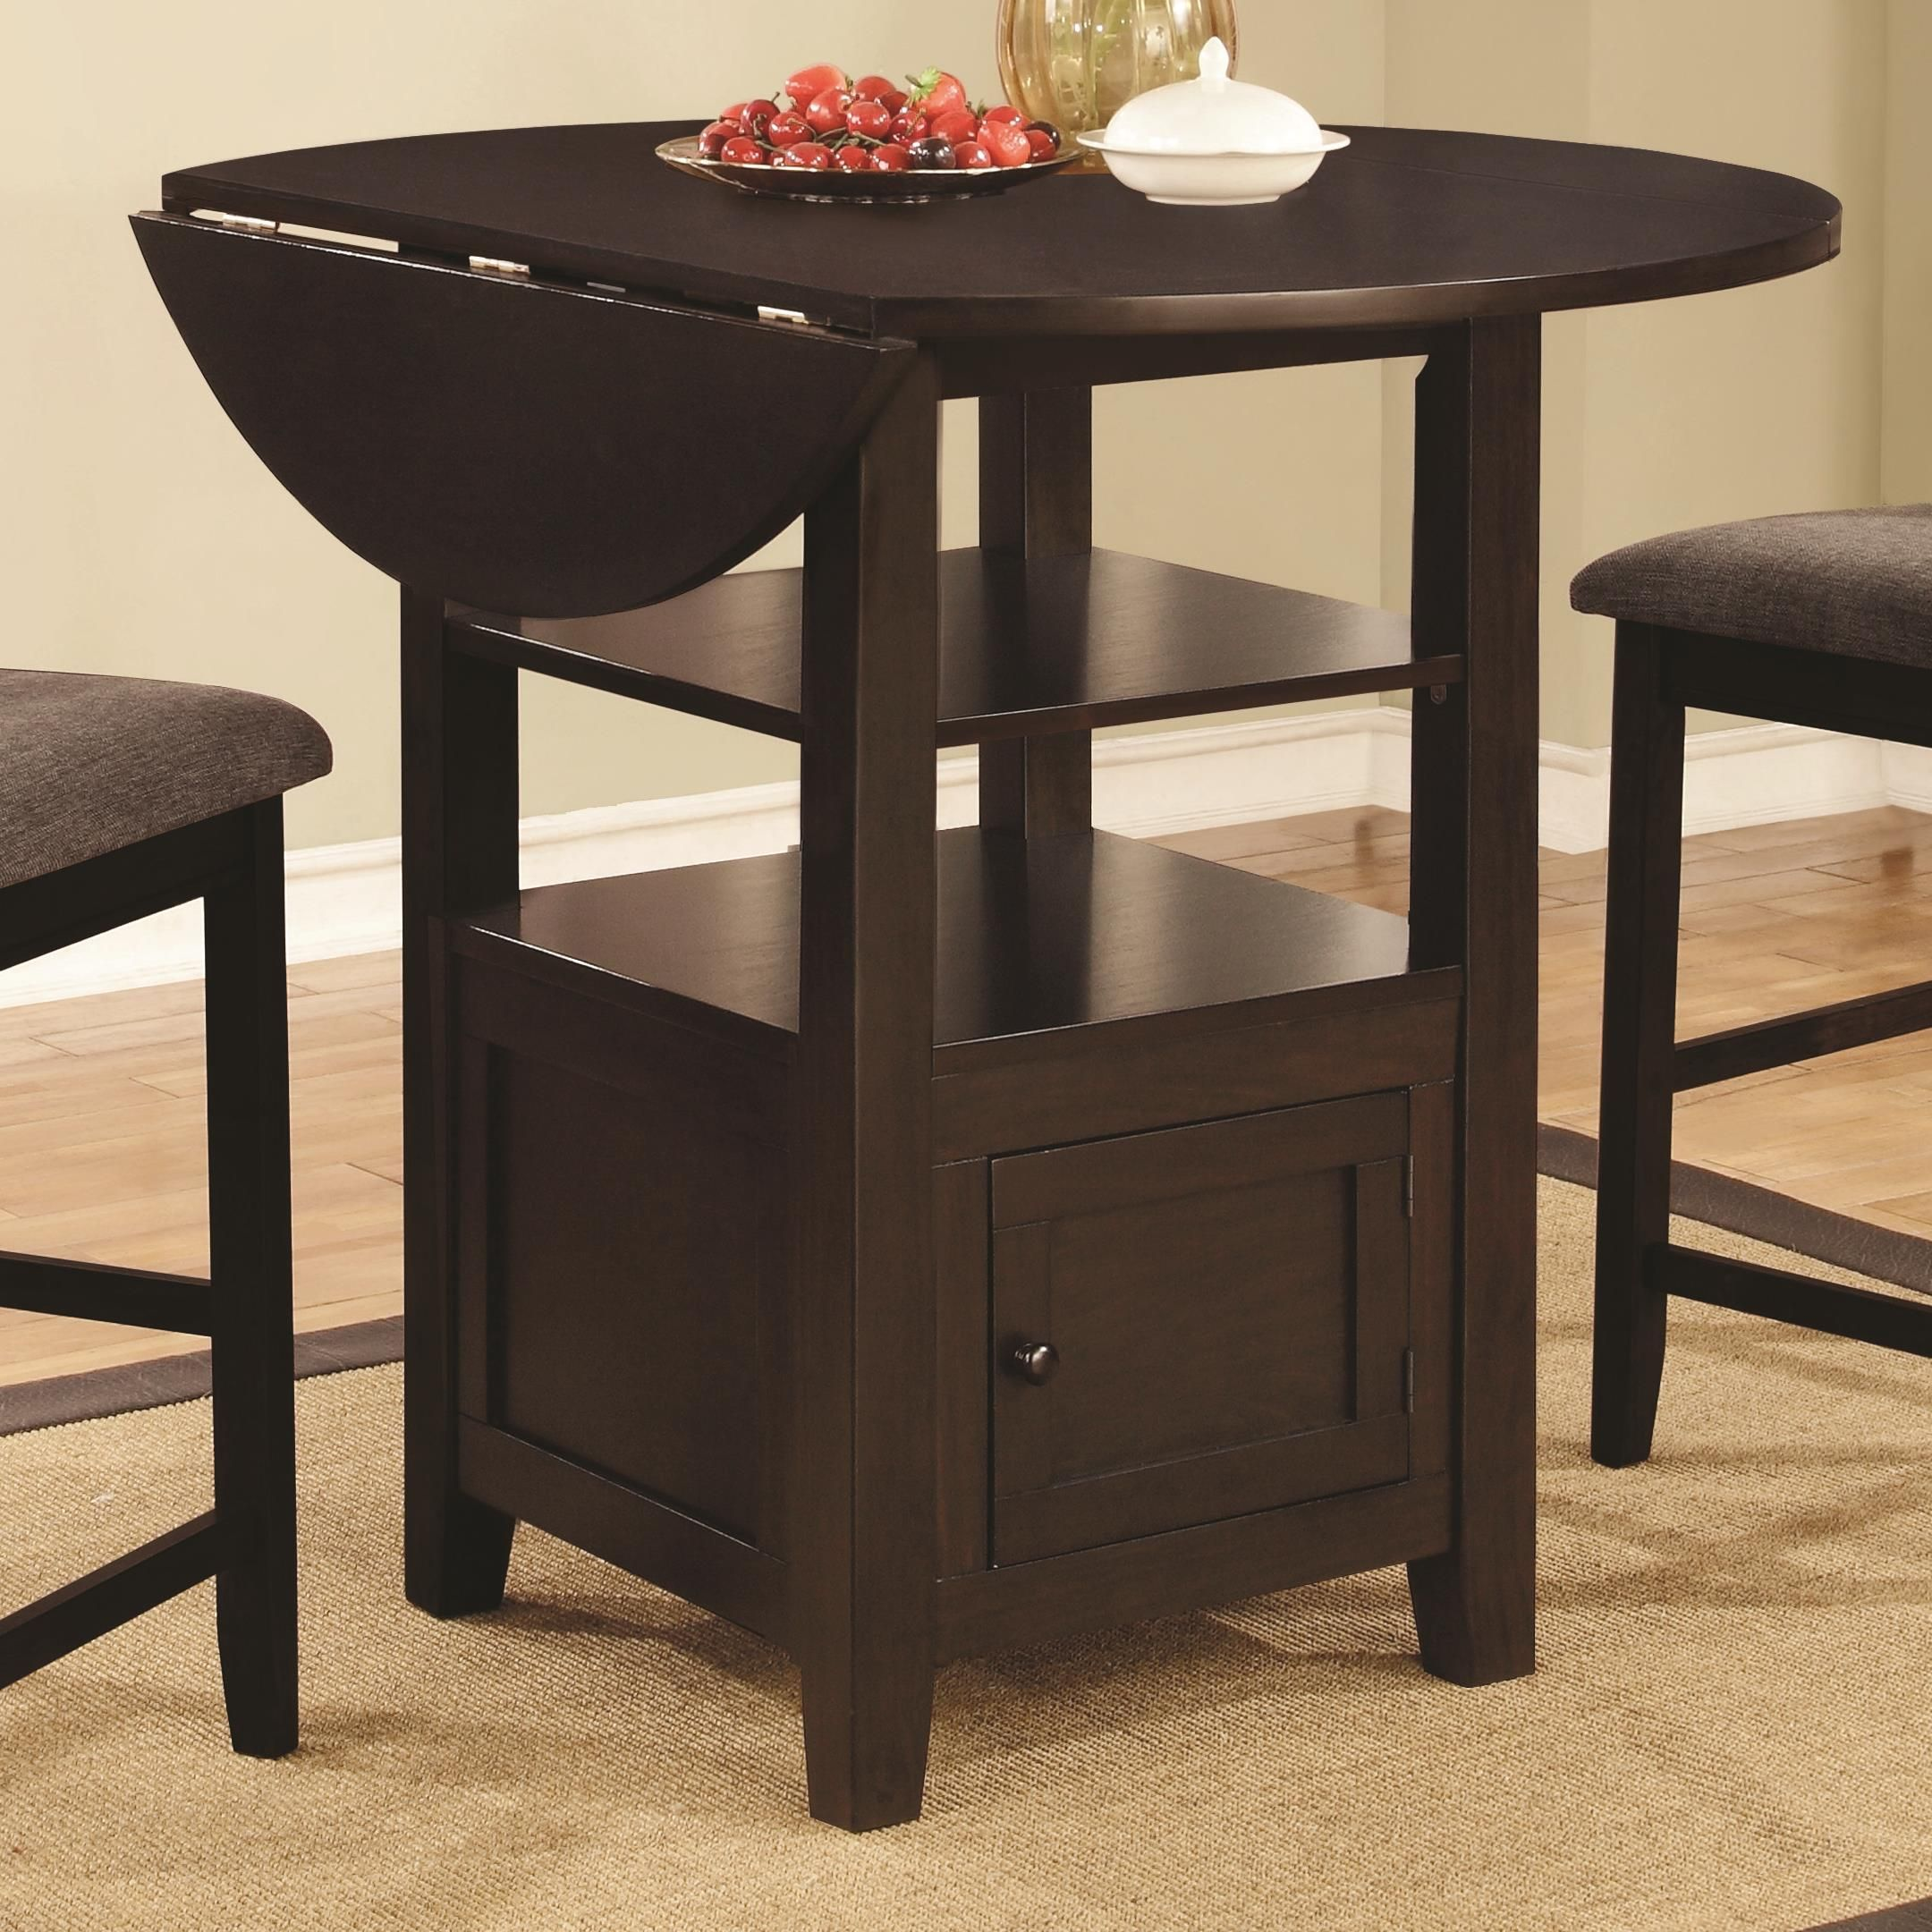 Stockton Drop Leaf Counter Height Table With Storage By Coaster At Beck S Furniture Counter Height Table Counter Height Dining Table Dining Table In Kitchen